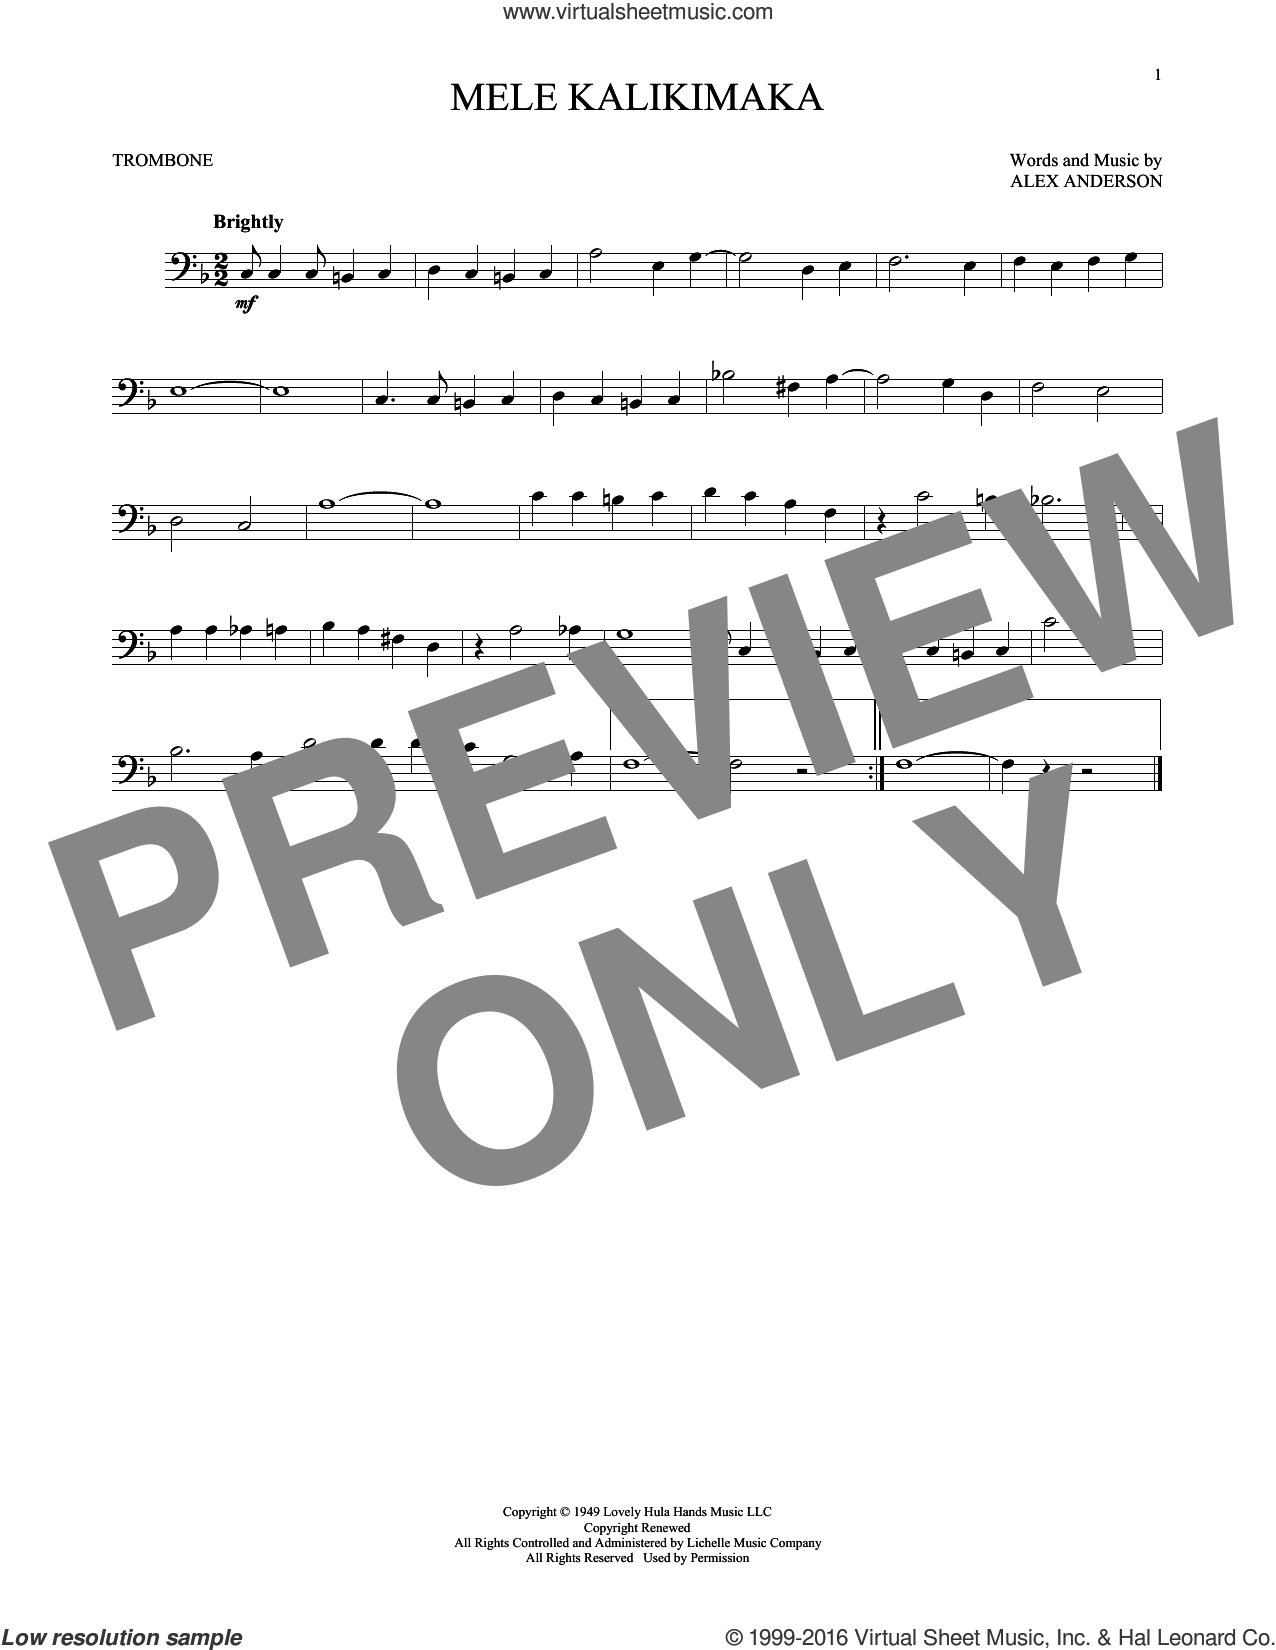 Mele Kalikimaka sheet music for trombone solo by Bing Crosby and R. Alex Anderson, intermediate skill level